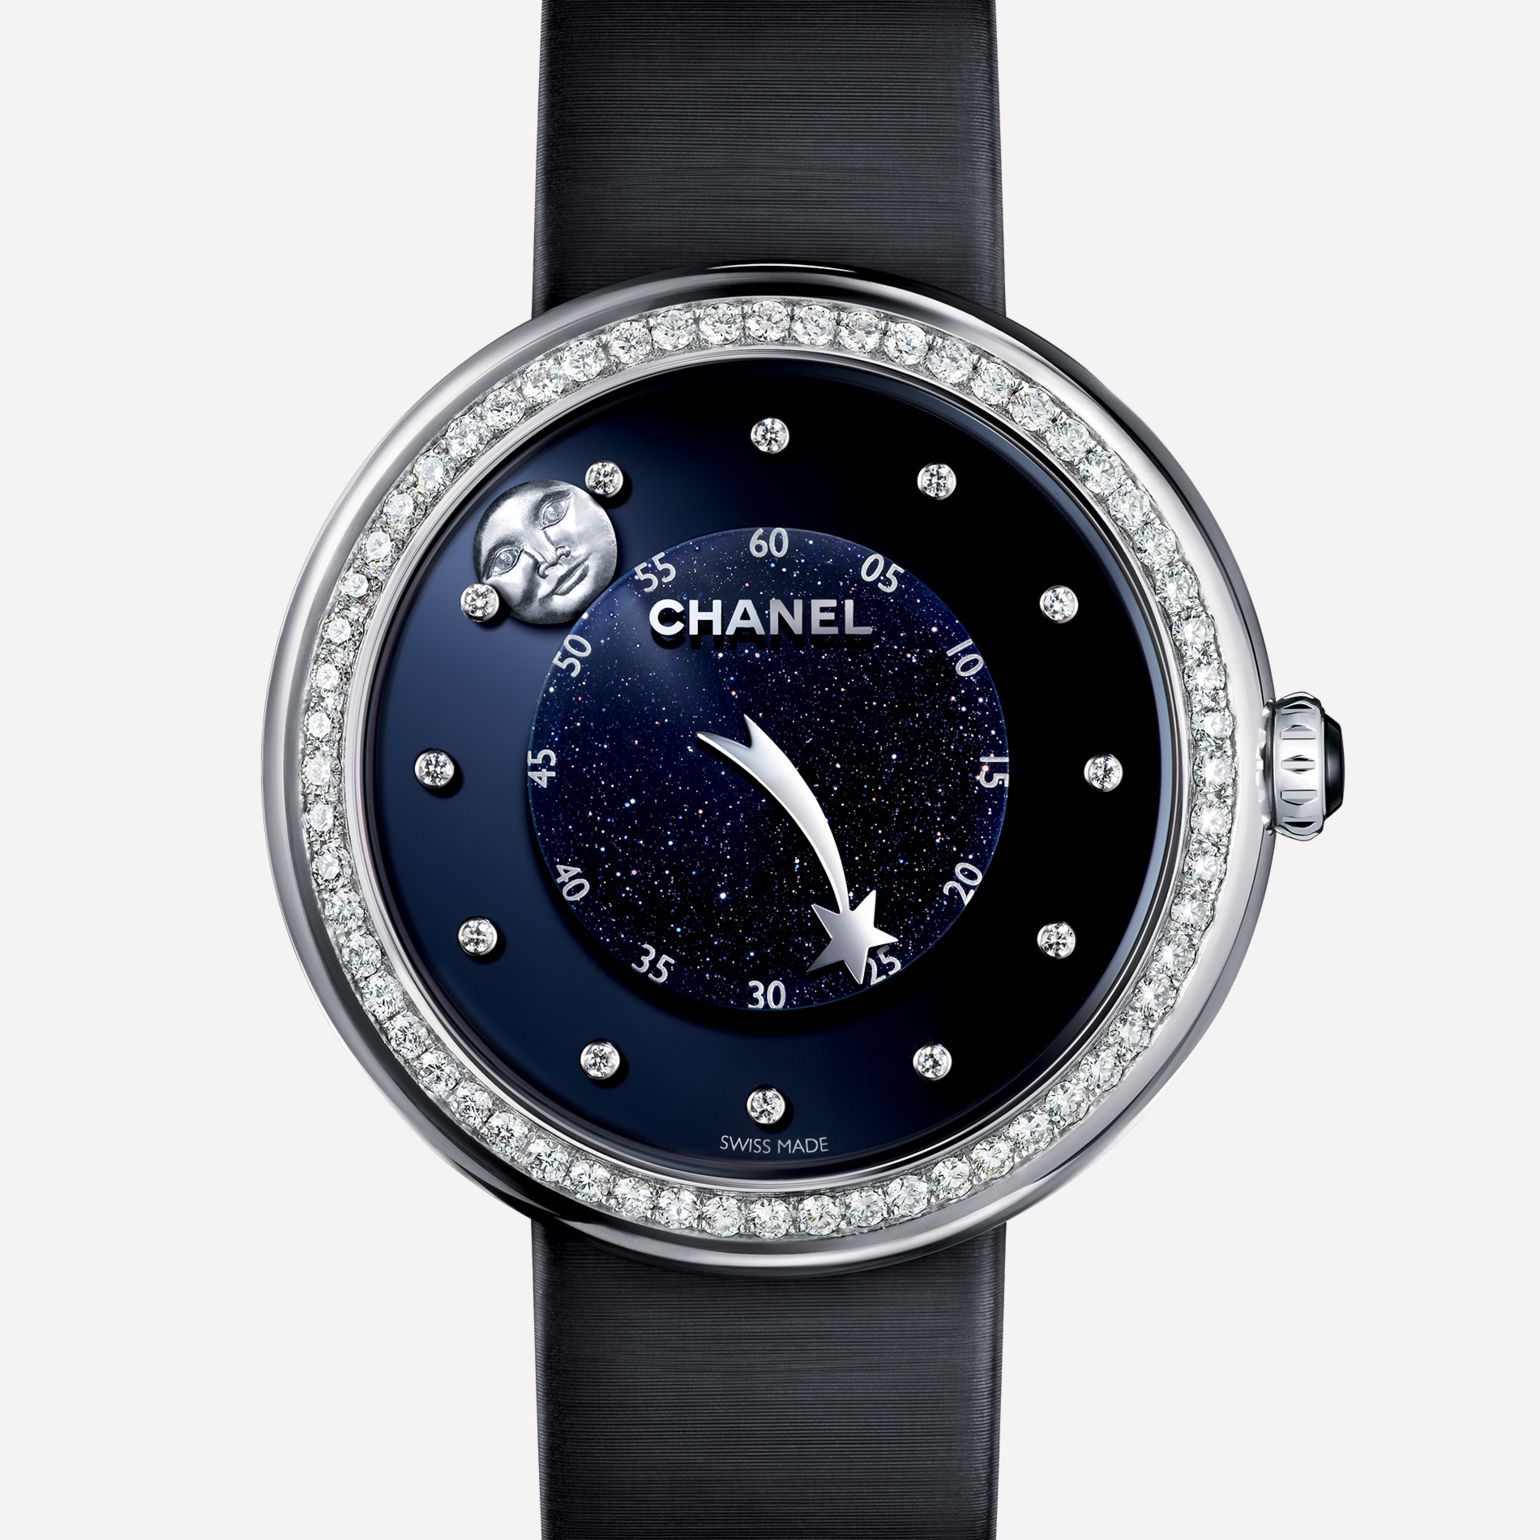 Mademoiselle Privé Watch Aventurine dial, hands with moon and comet motifs, diamond indicators